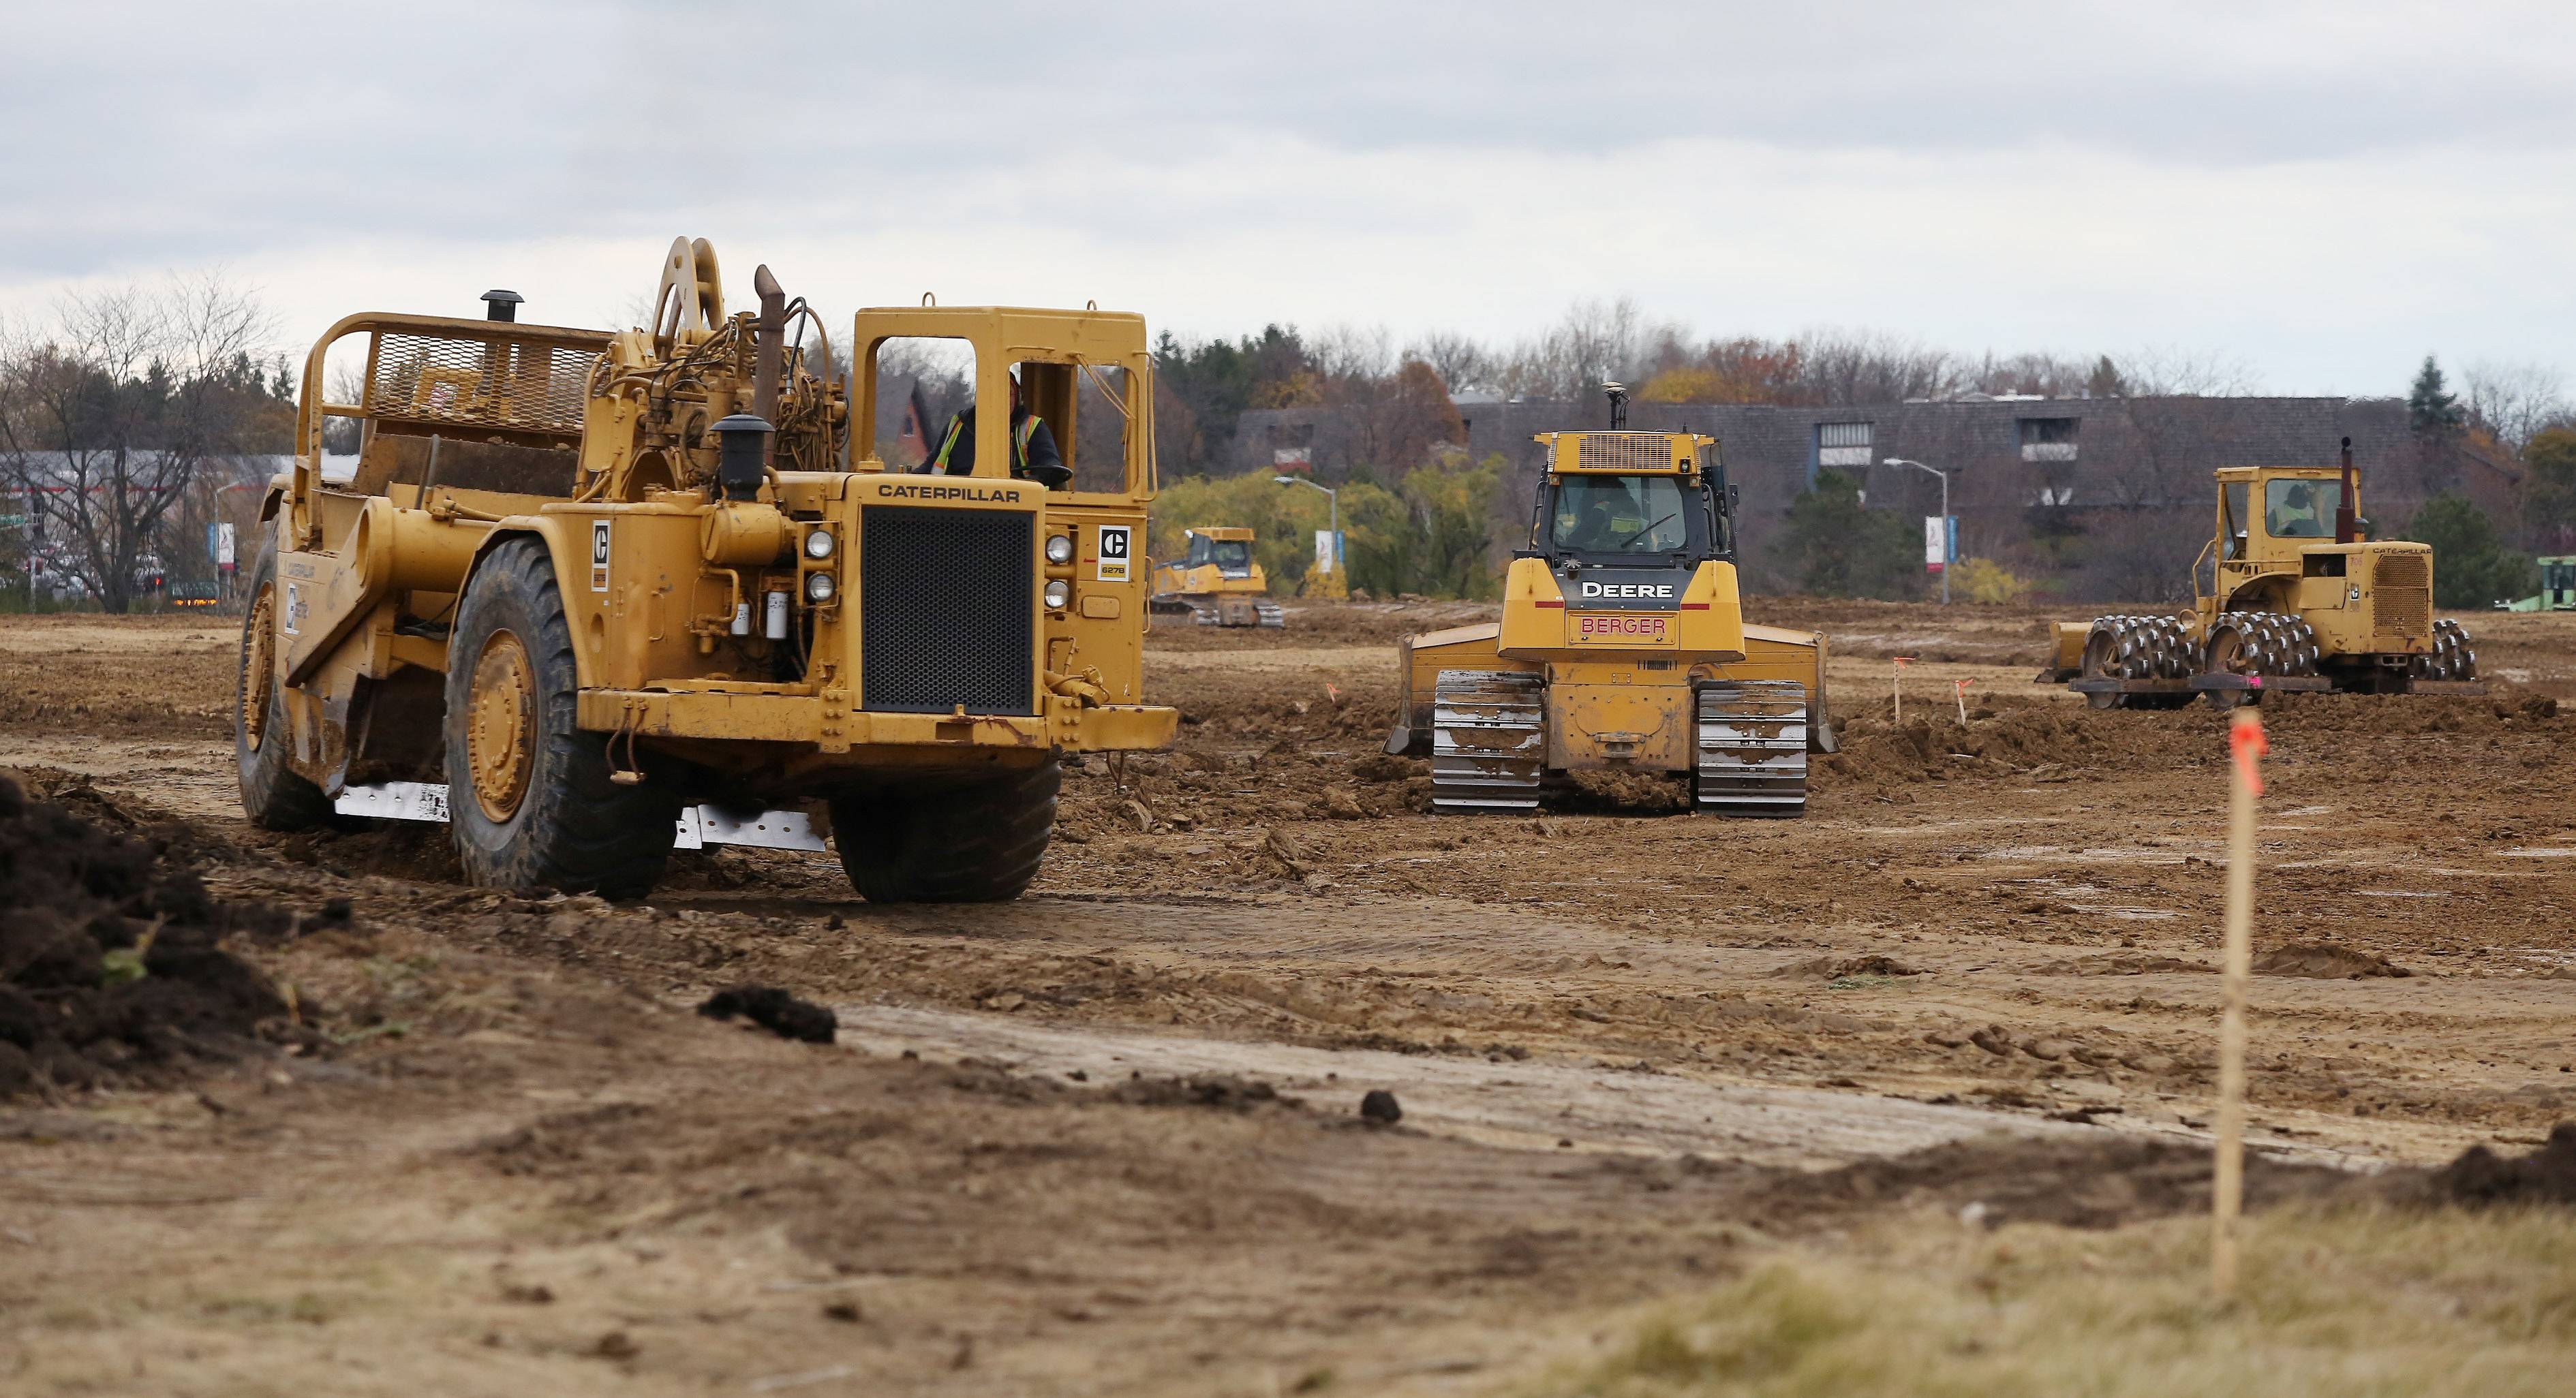 Construction to begin at menards site in vernon hills after lawsuit